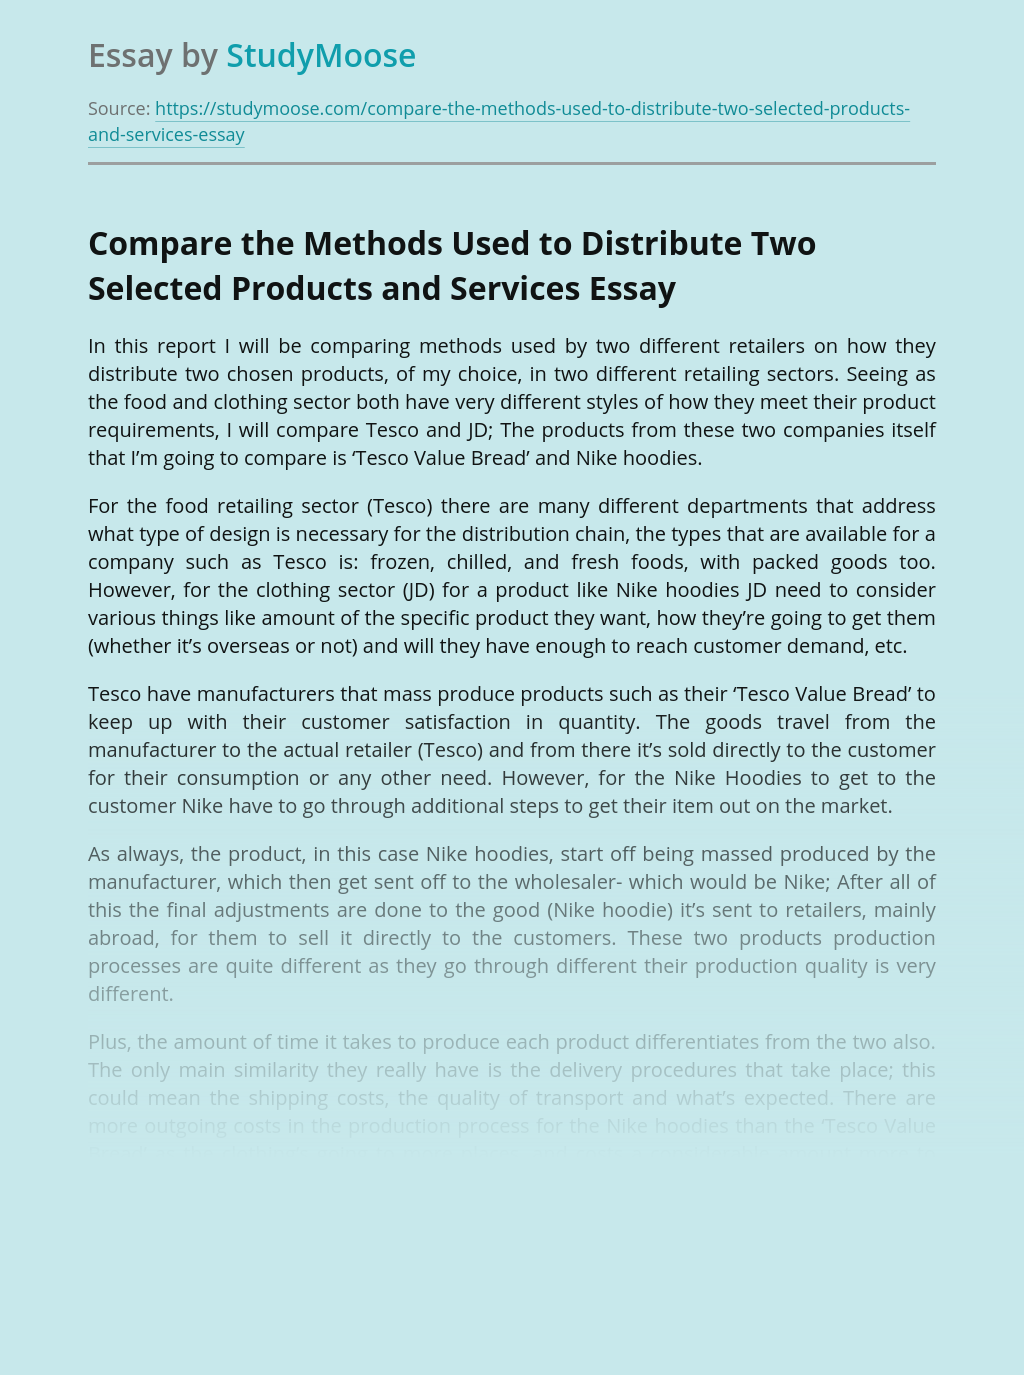 Compare the Methods Used to Distribute Two Selected Products and Services